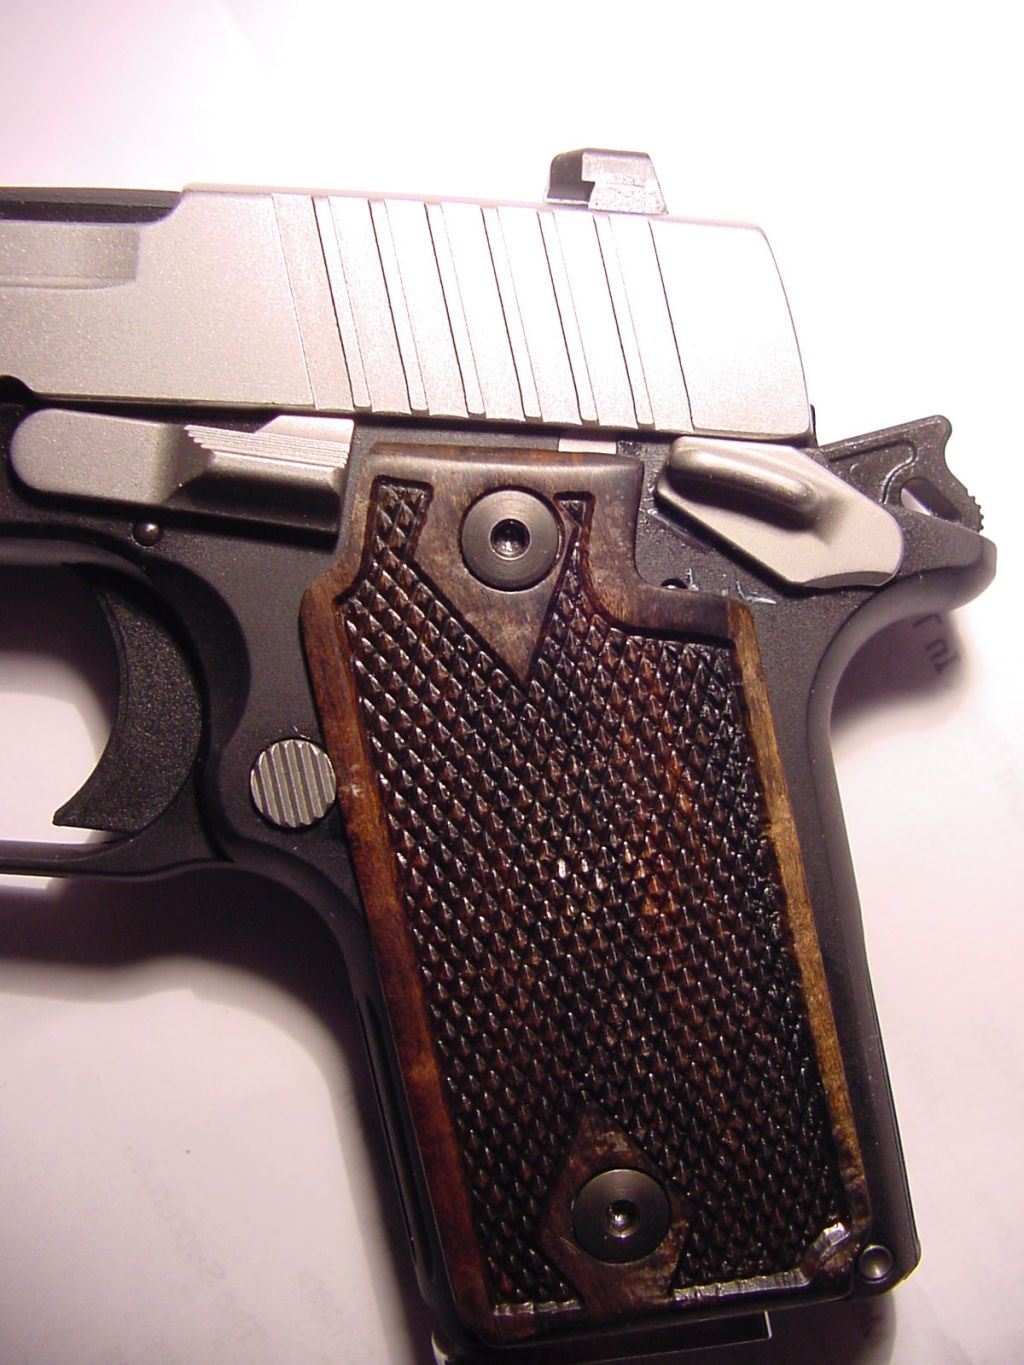 sig p238, no grips for sale? - Semi-Auto Handguns